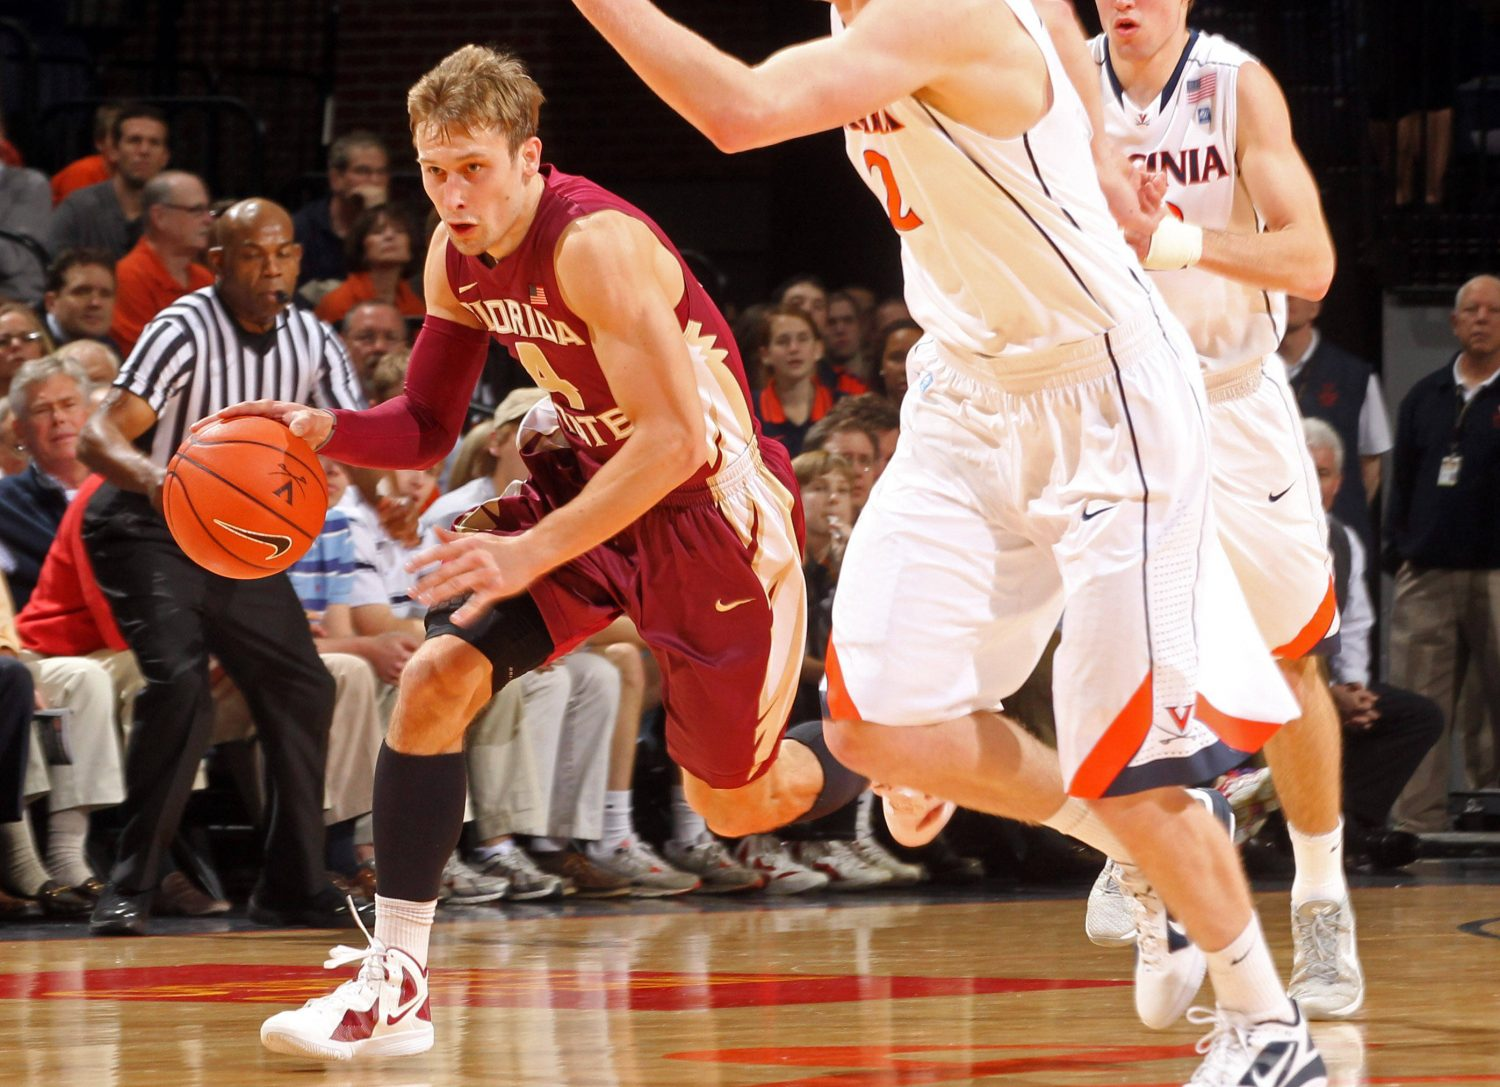 Florida State guard Deividas Dulkys drives past Virginia defenders after stealing the ball during the first half. (AP Photo/Andrew Shurtleff)